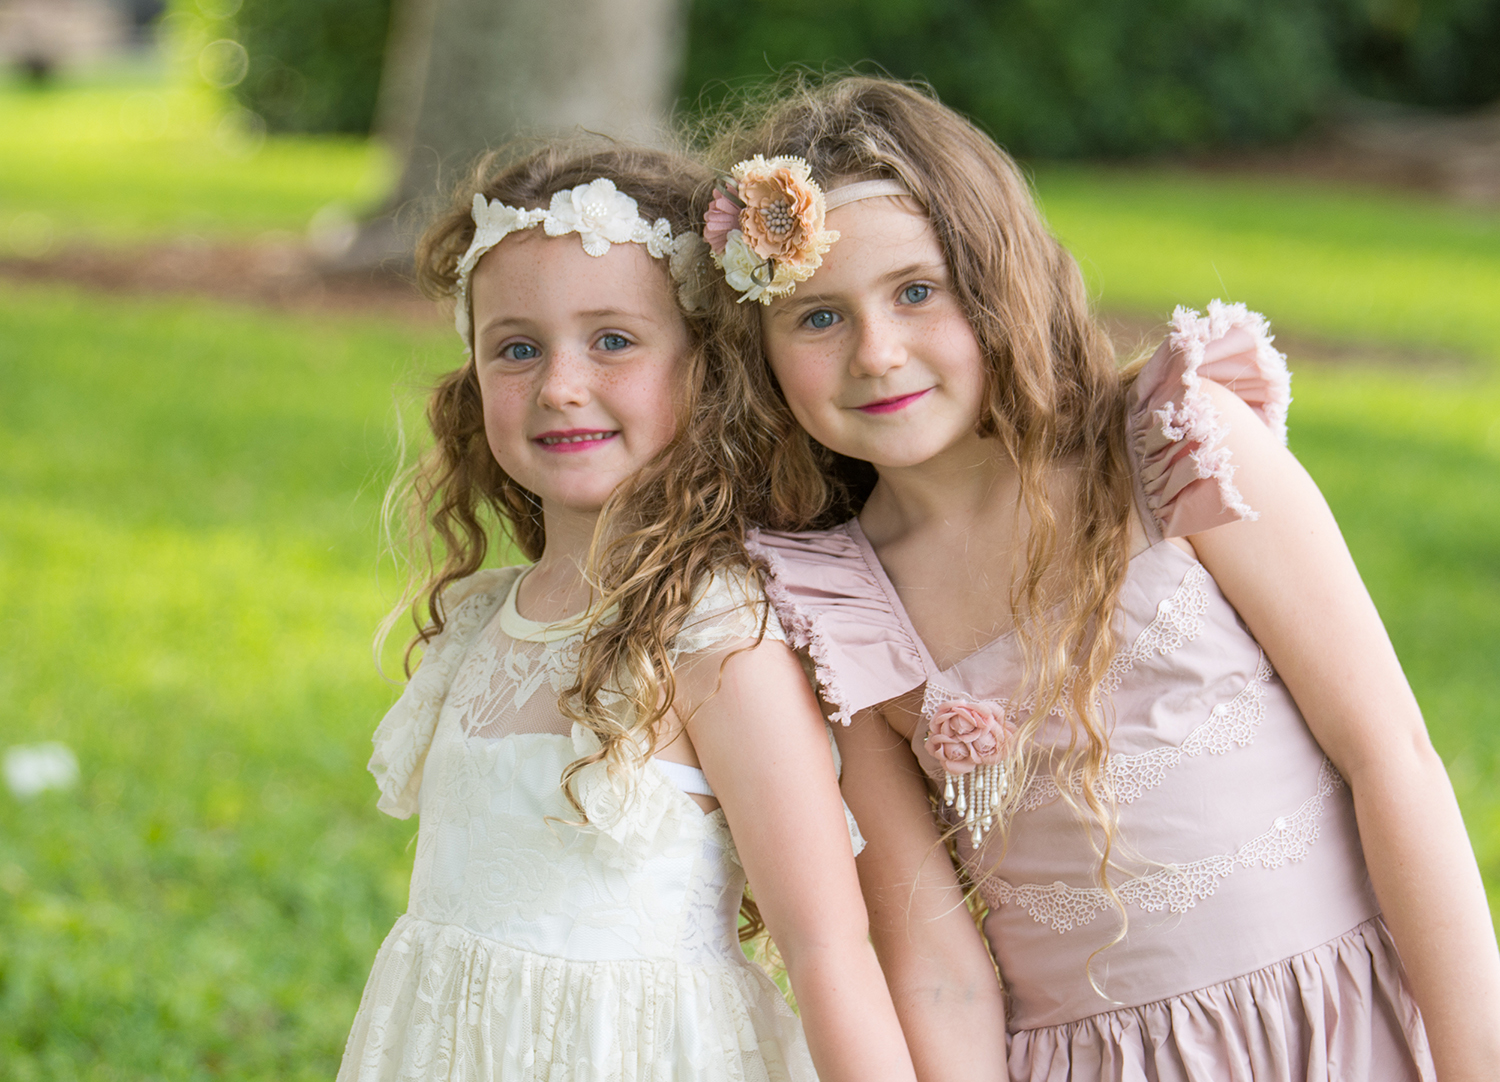 wellington-fl-west-palm-child-photographer-photography-kids-south-florida-family-photos-couture-girls-dresses.jpg